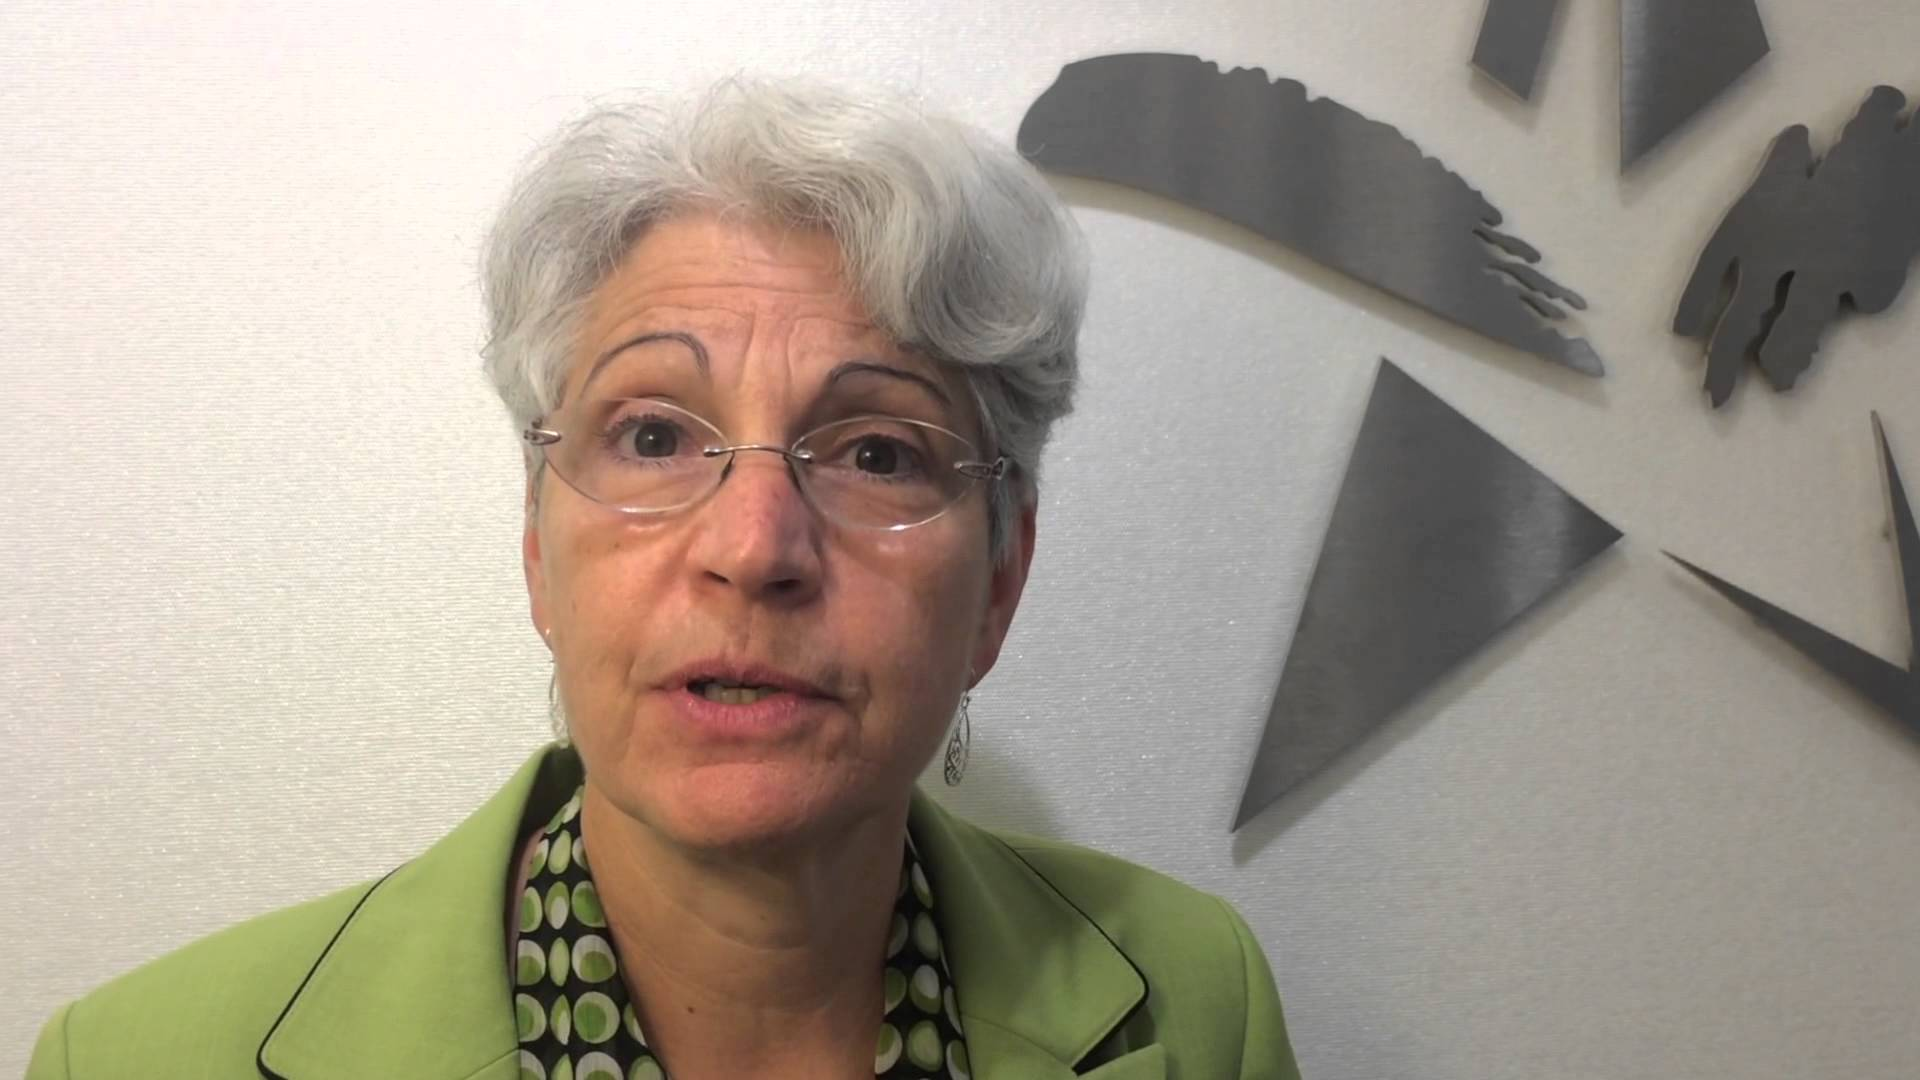 #DemandDemocracy Video Blog: Get Big Money Out of Politics to Fight Economic Inequality